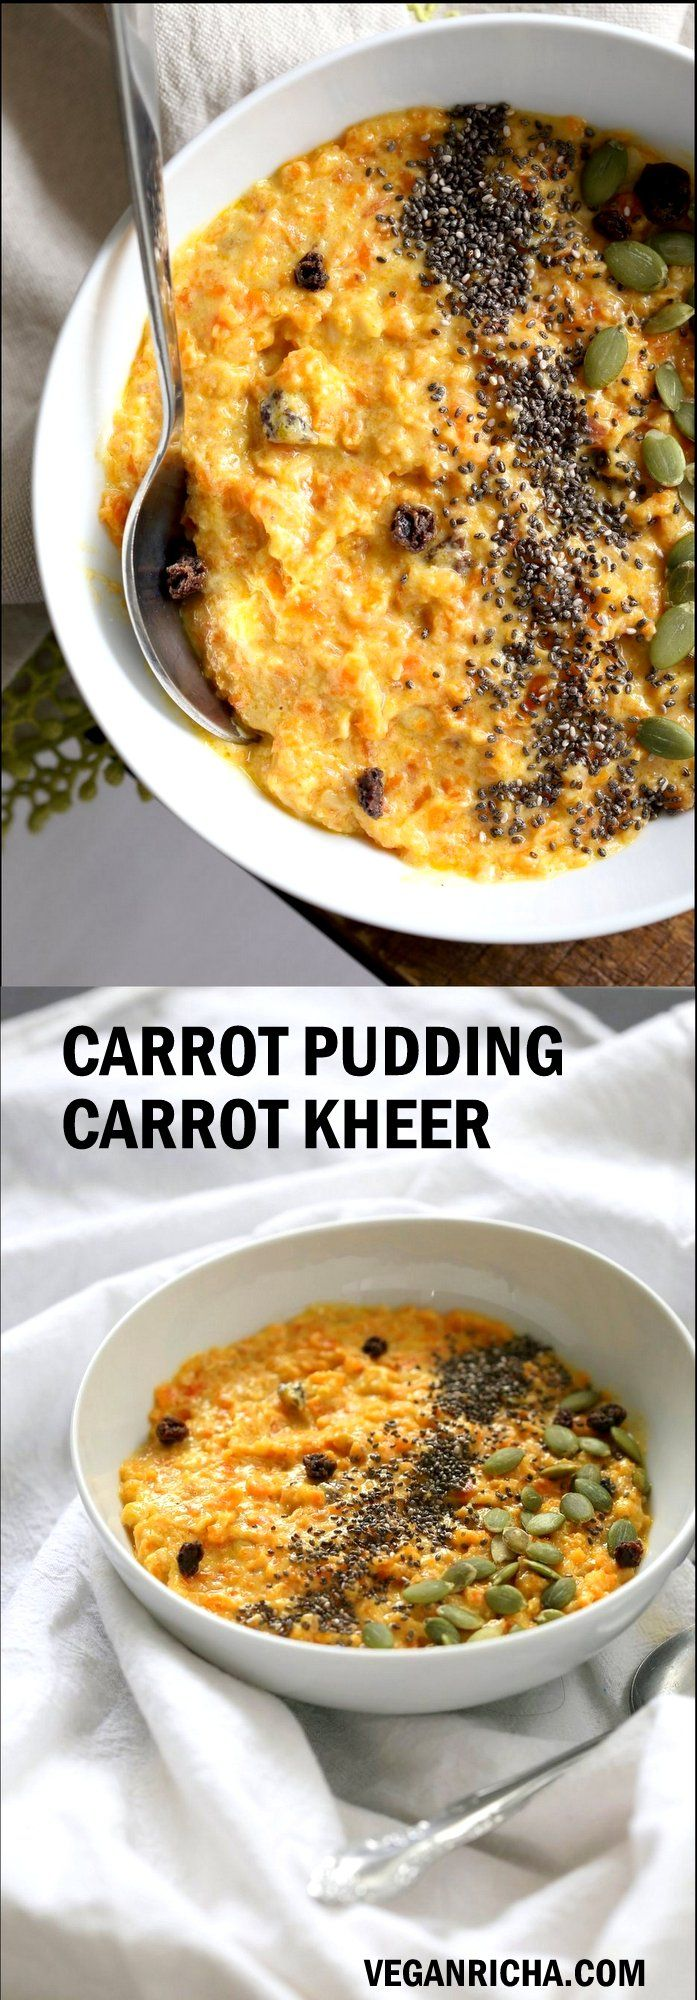 Carrot Pudding with Cardamom - Carrot Kheer Recipe. Shredded Carrots slow cooked with almond milk, roasted nuts and cardamom. Serve as is or top with toasted nuts, seeds and chia.